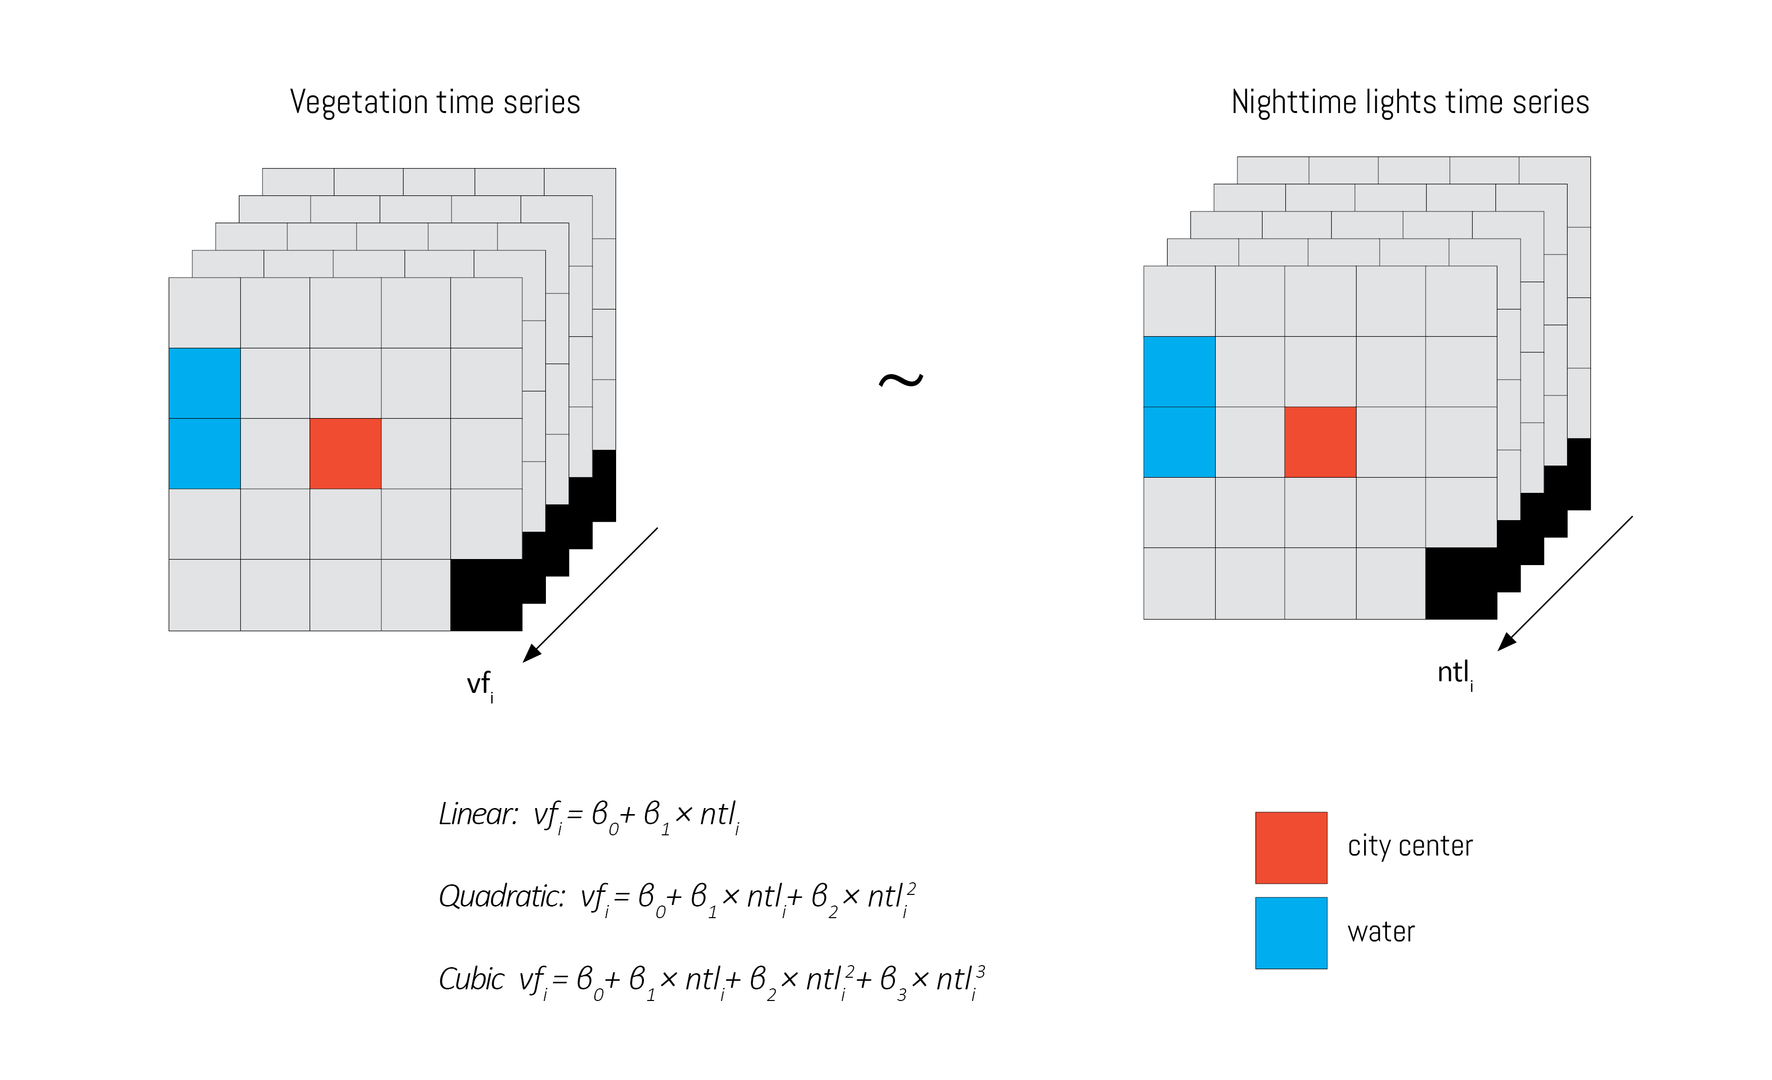 Figure 3.We fit 3 models per each pixel. Water was excluded from the analsis.